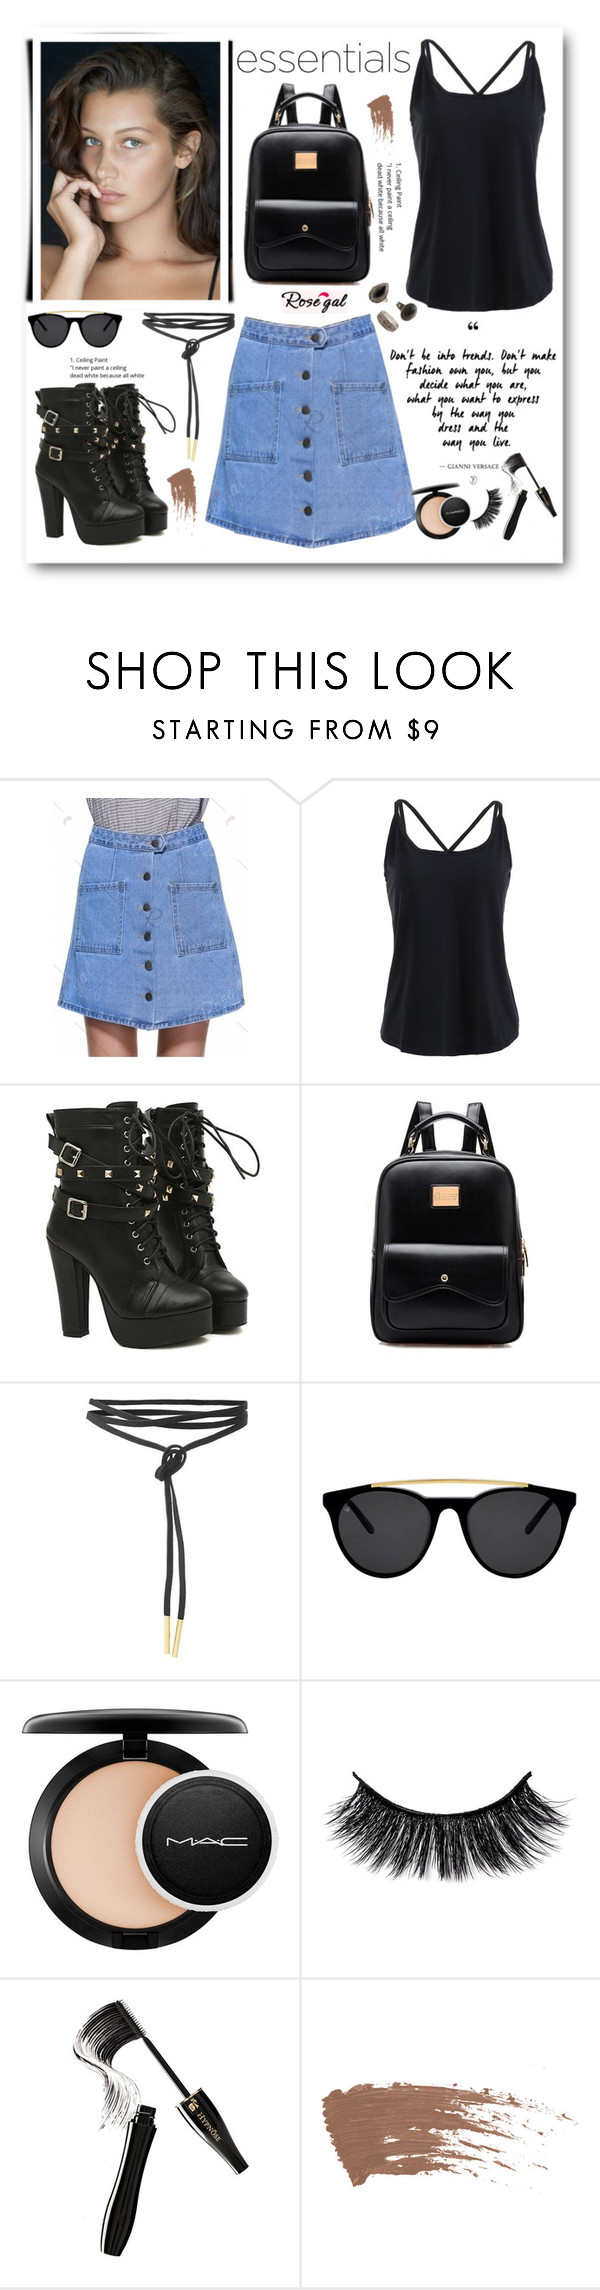 """Rosegal 8"" by cindy88 ❤ liked on Polyvore featuring Smoke x Mirrors, MAC Cosmetics, Lancôme, MANGO and rosegal"